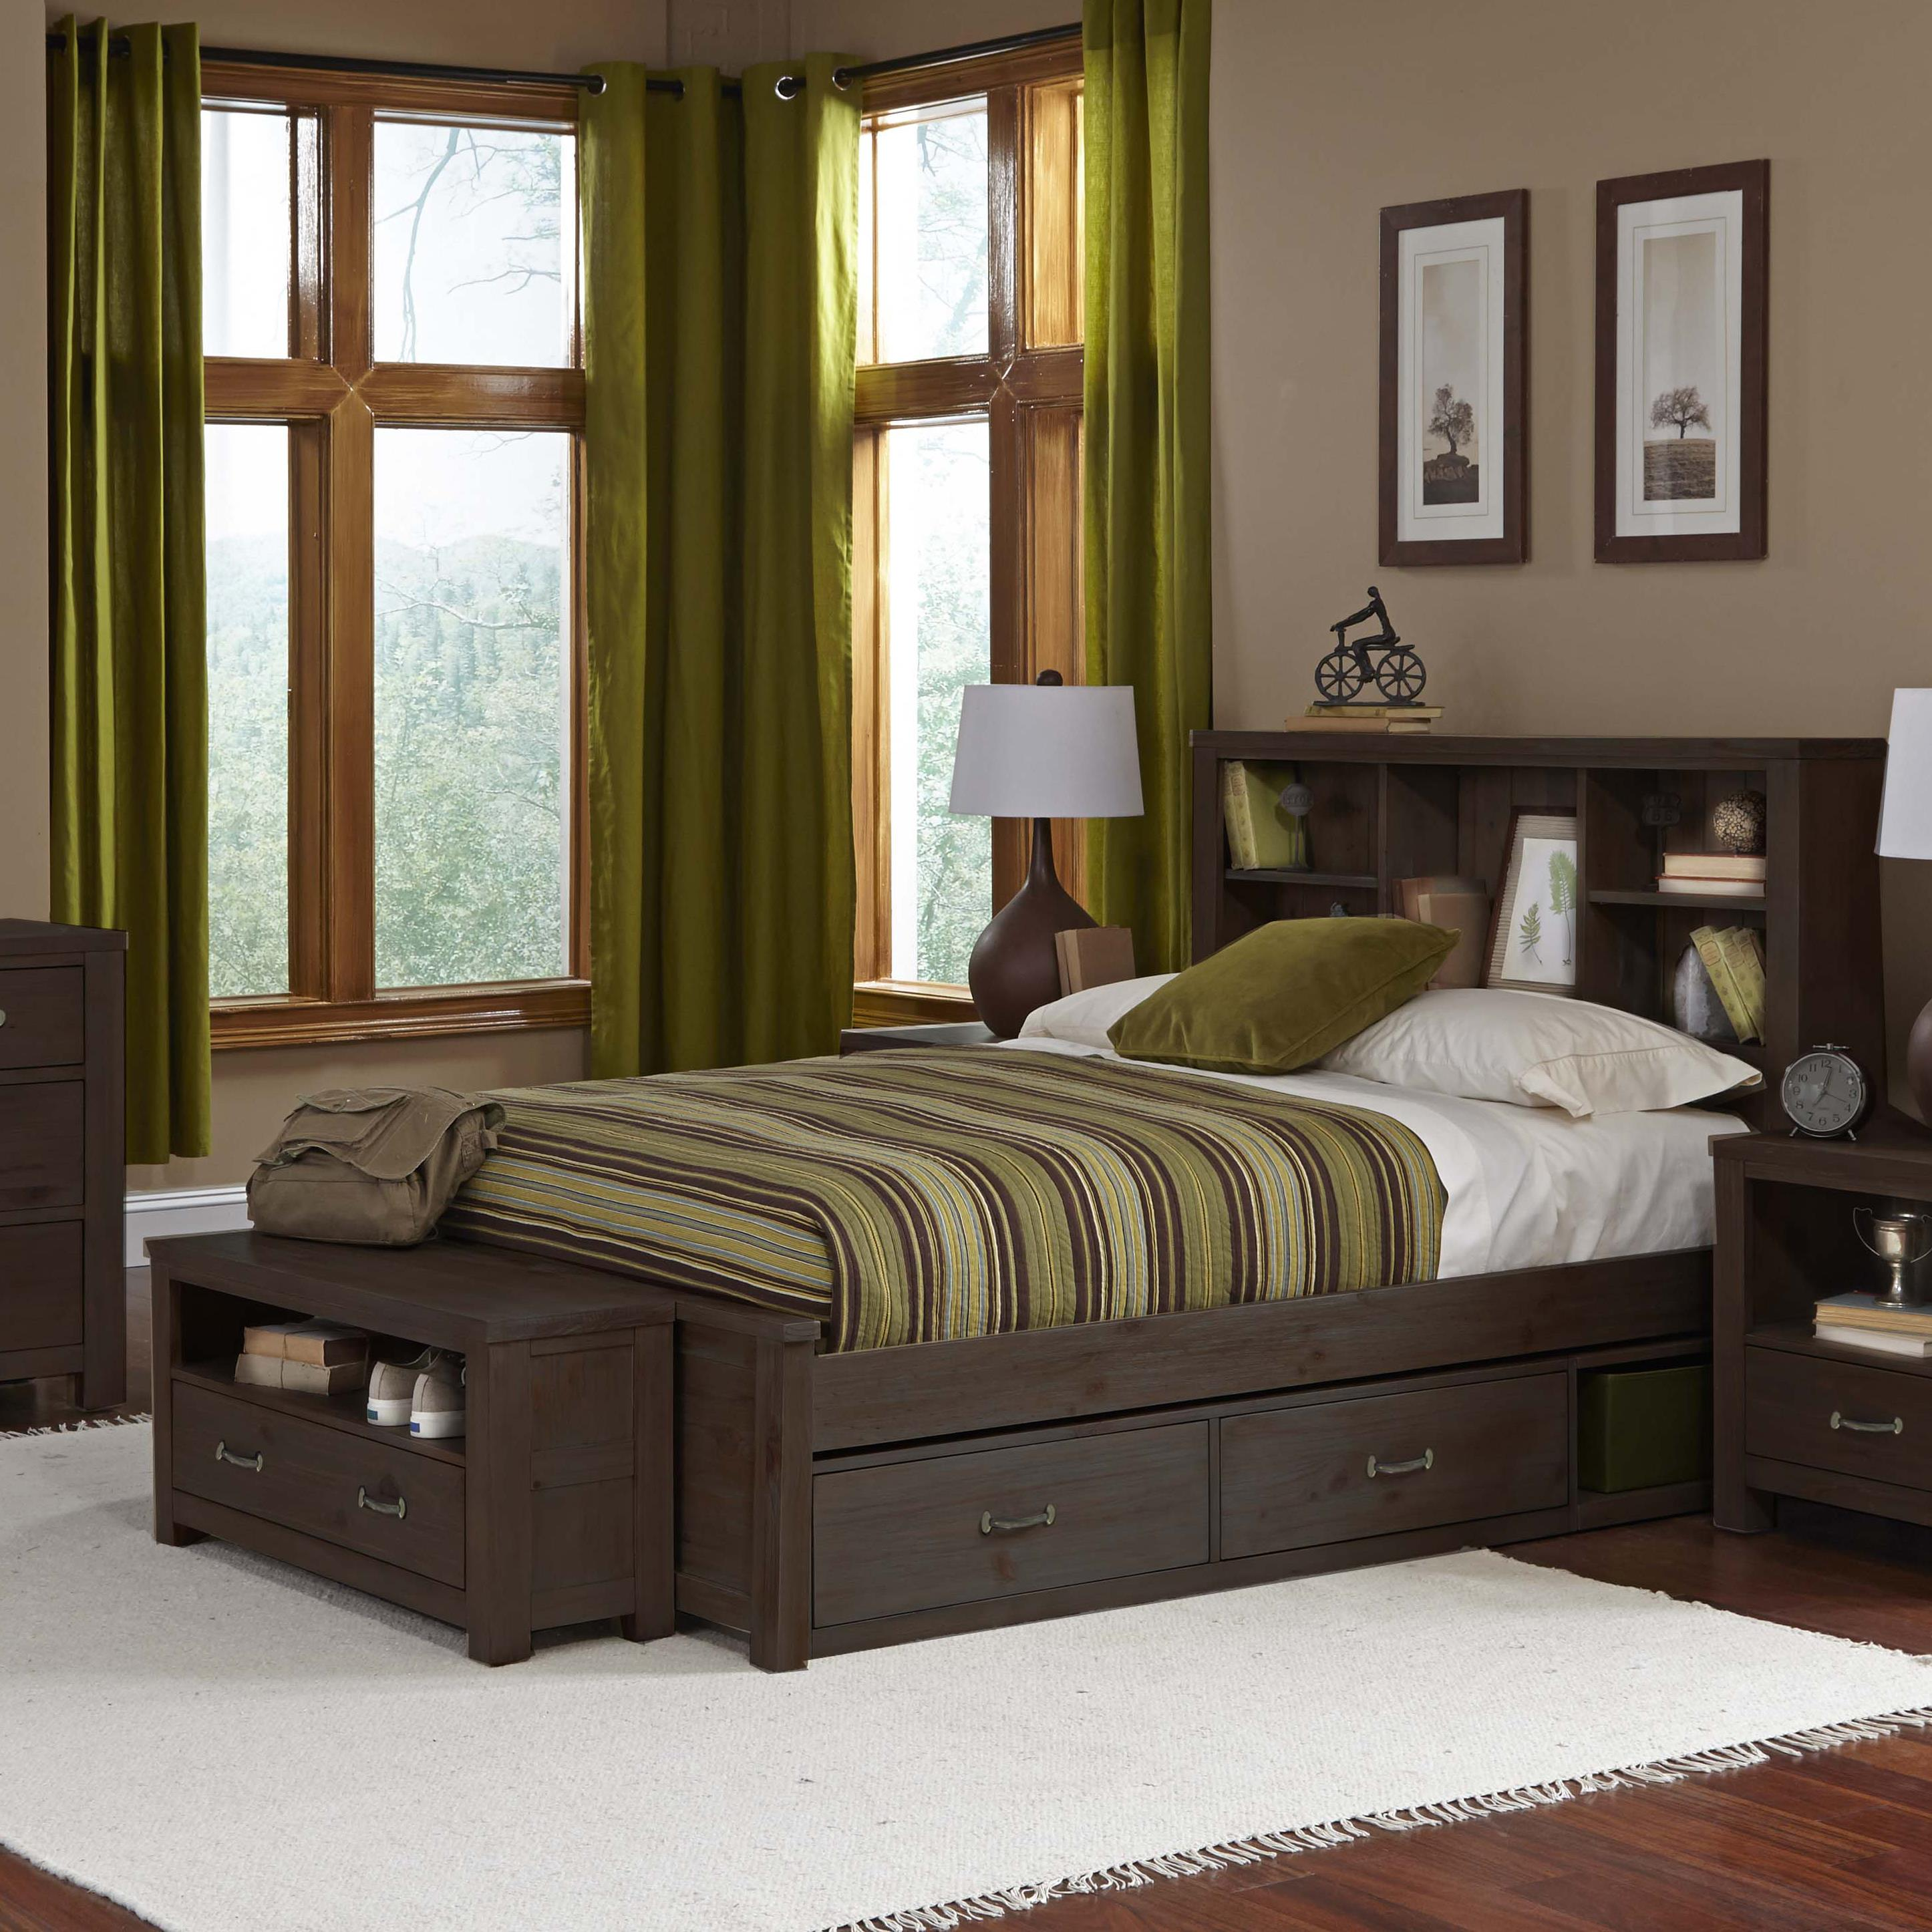 Highlands Full Bookcase Bed with Underbed Storage by NE Kids at Stoney Creek Furniture